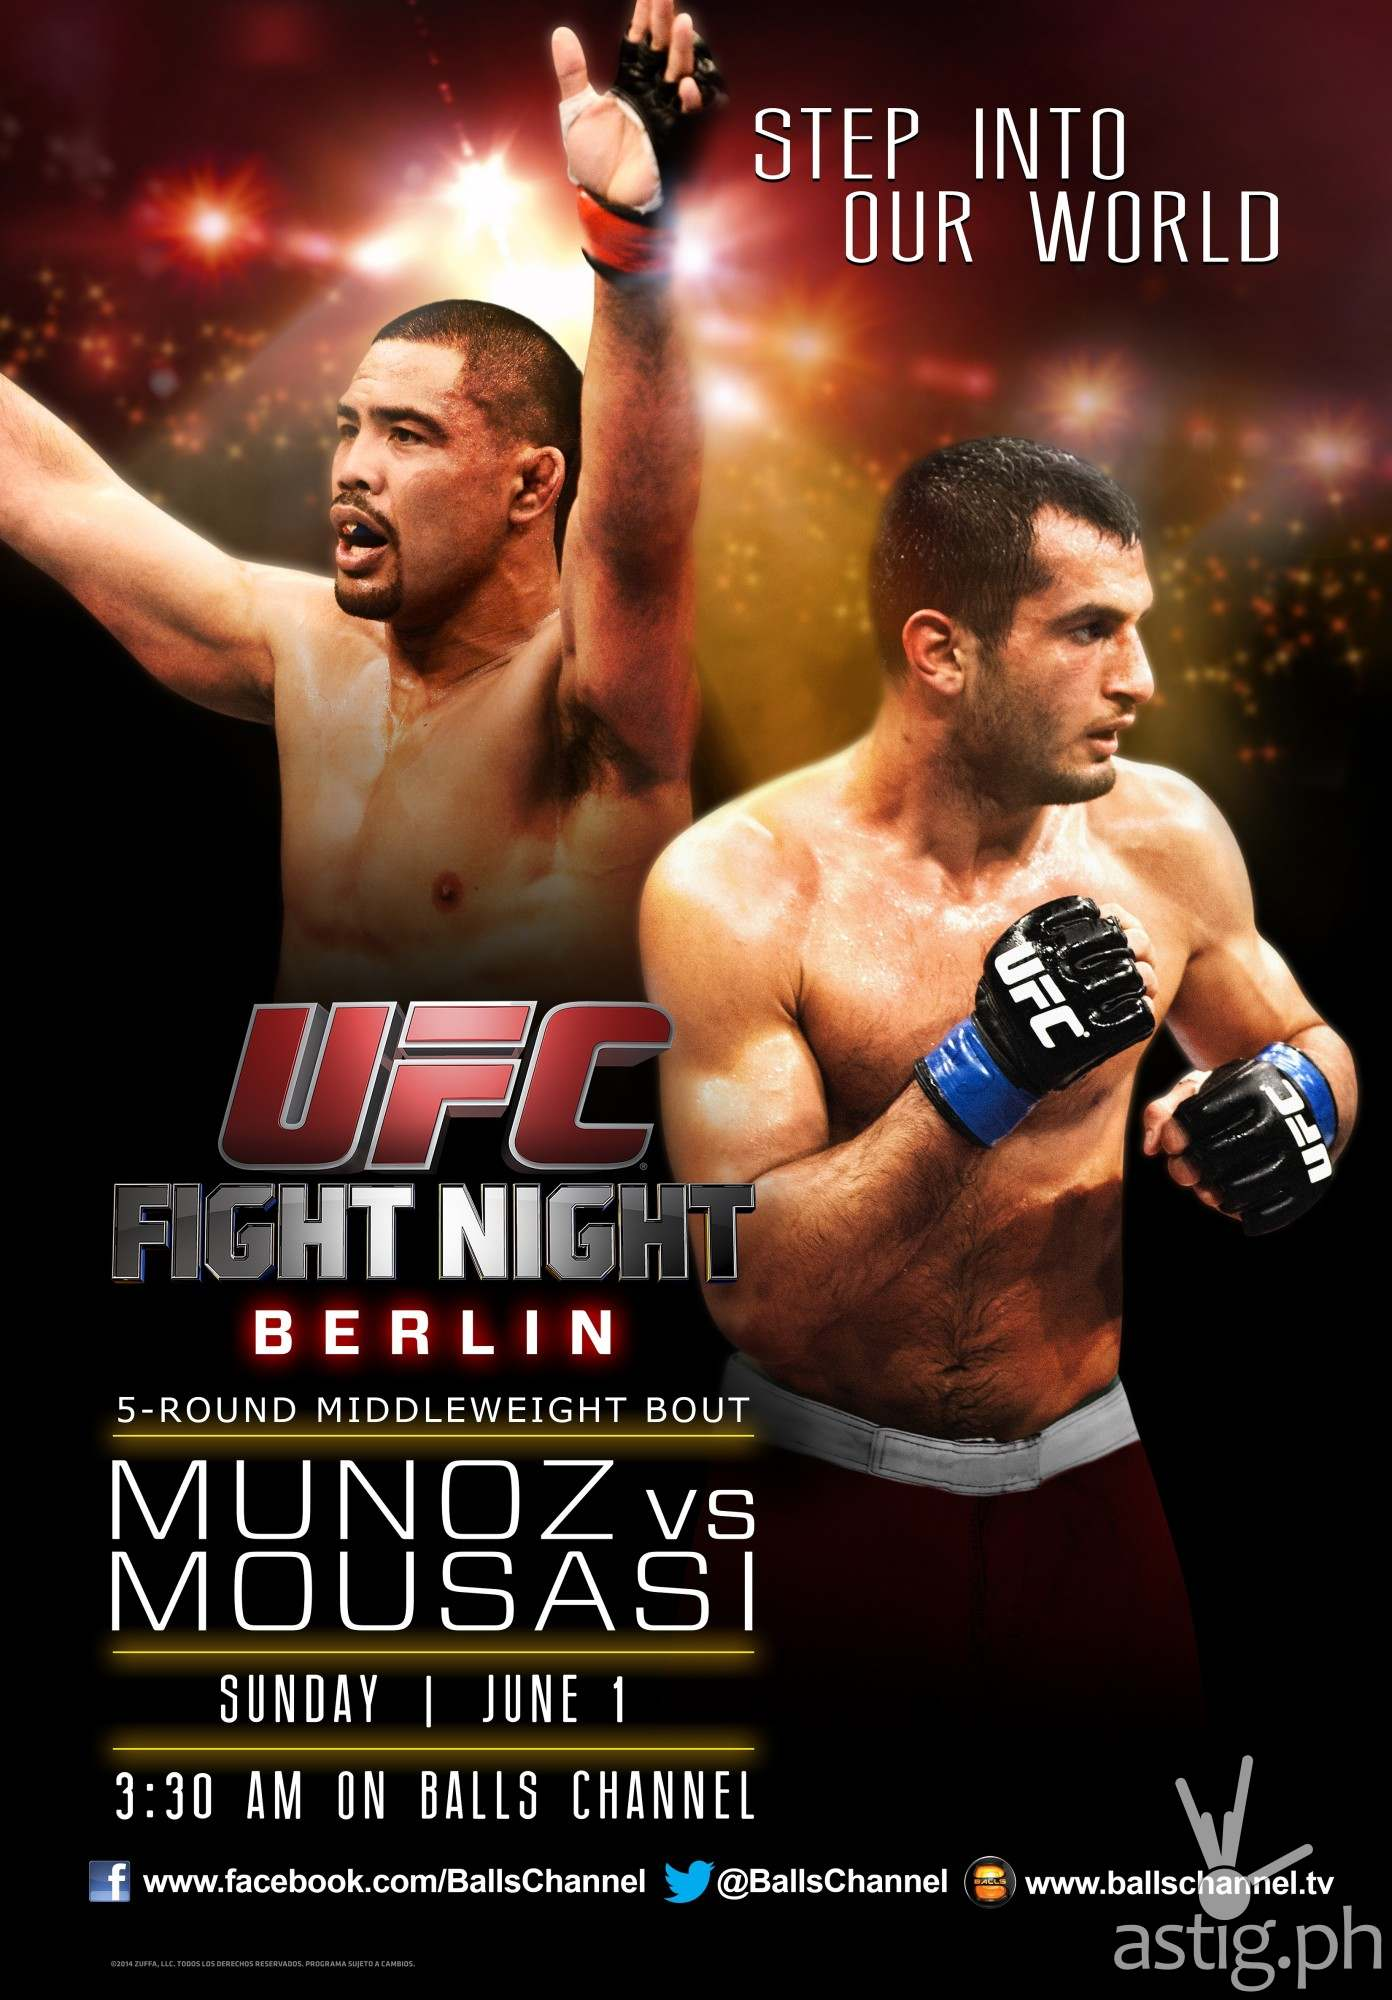 Mark Munoz vs Gerard Mousassi in UFC Fight Night